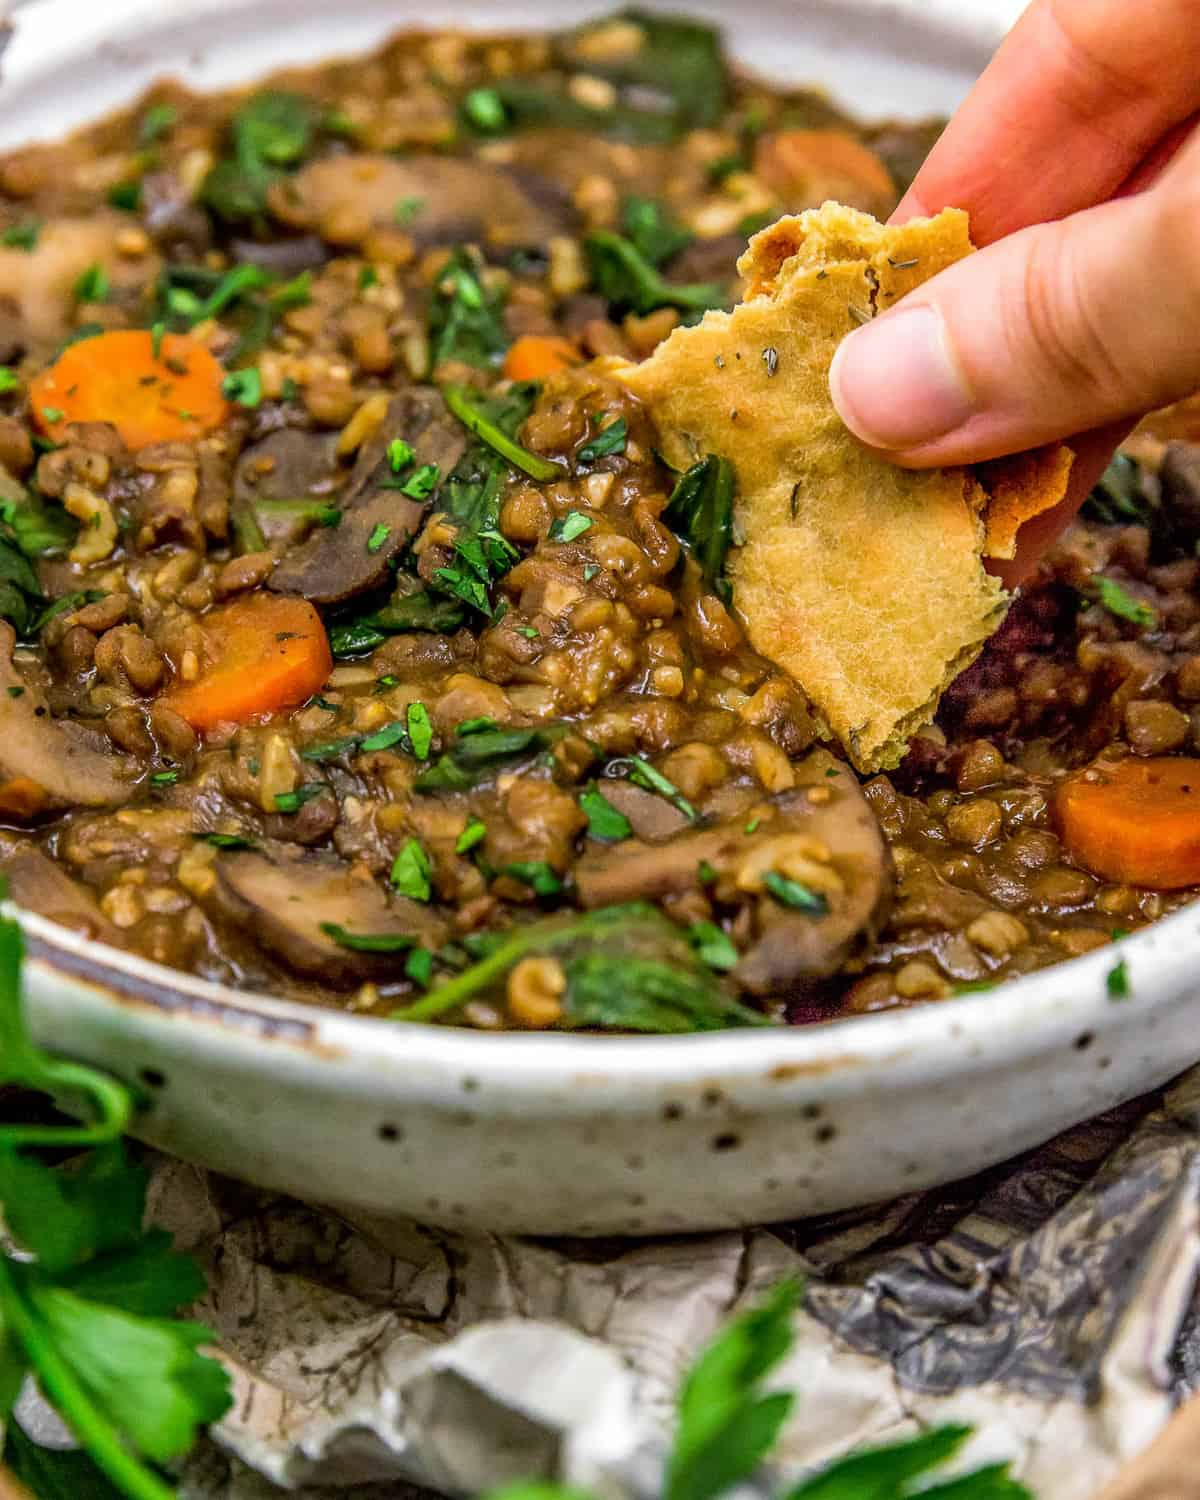 Dipping bread in French Lentil Rice Mushroom Stew